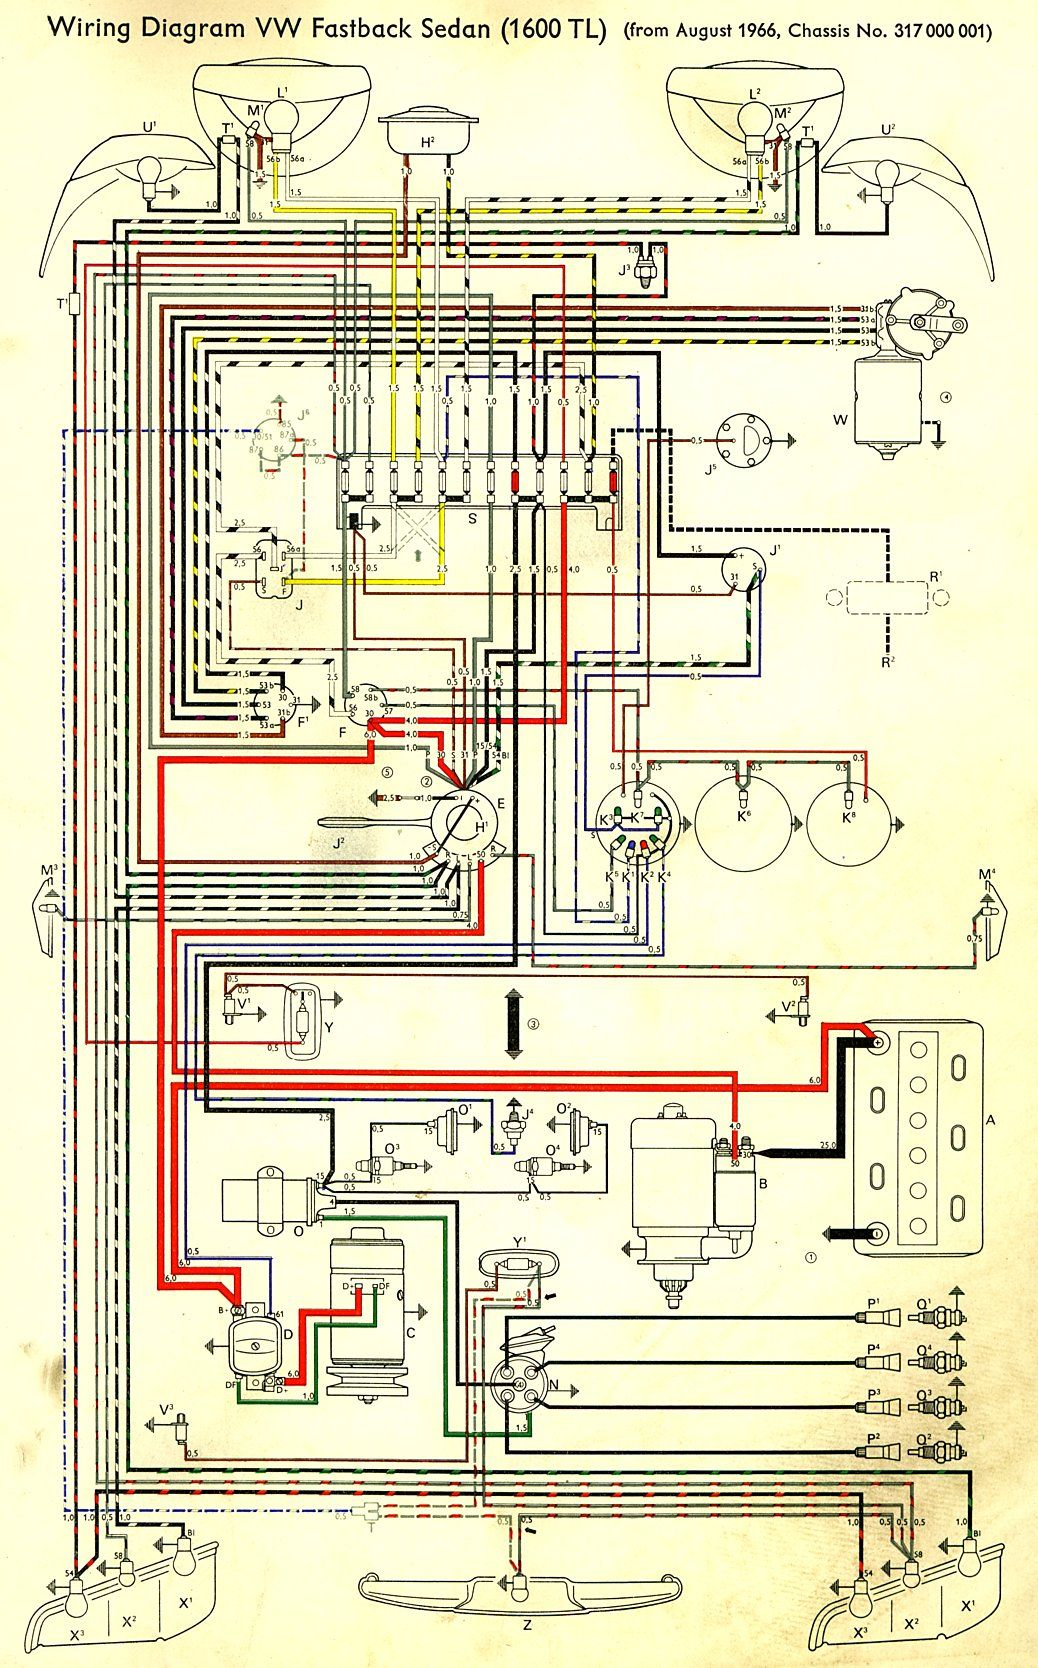 small resolution of wiring diagram type 928 model 84 page 1 wiring 97 front engine electronic ingnition lh injection cl concealed headlightlampassemrly